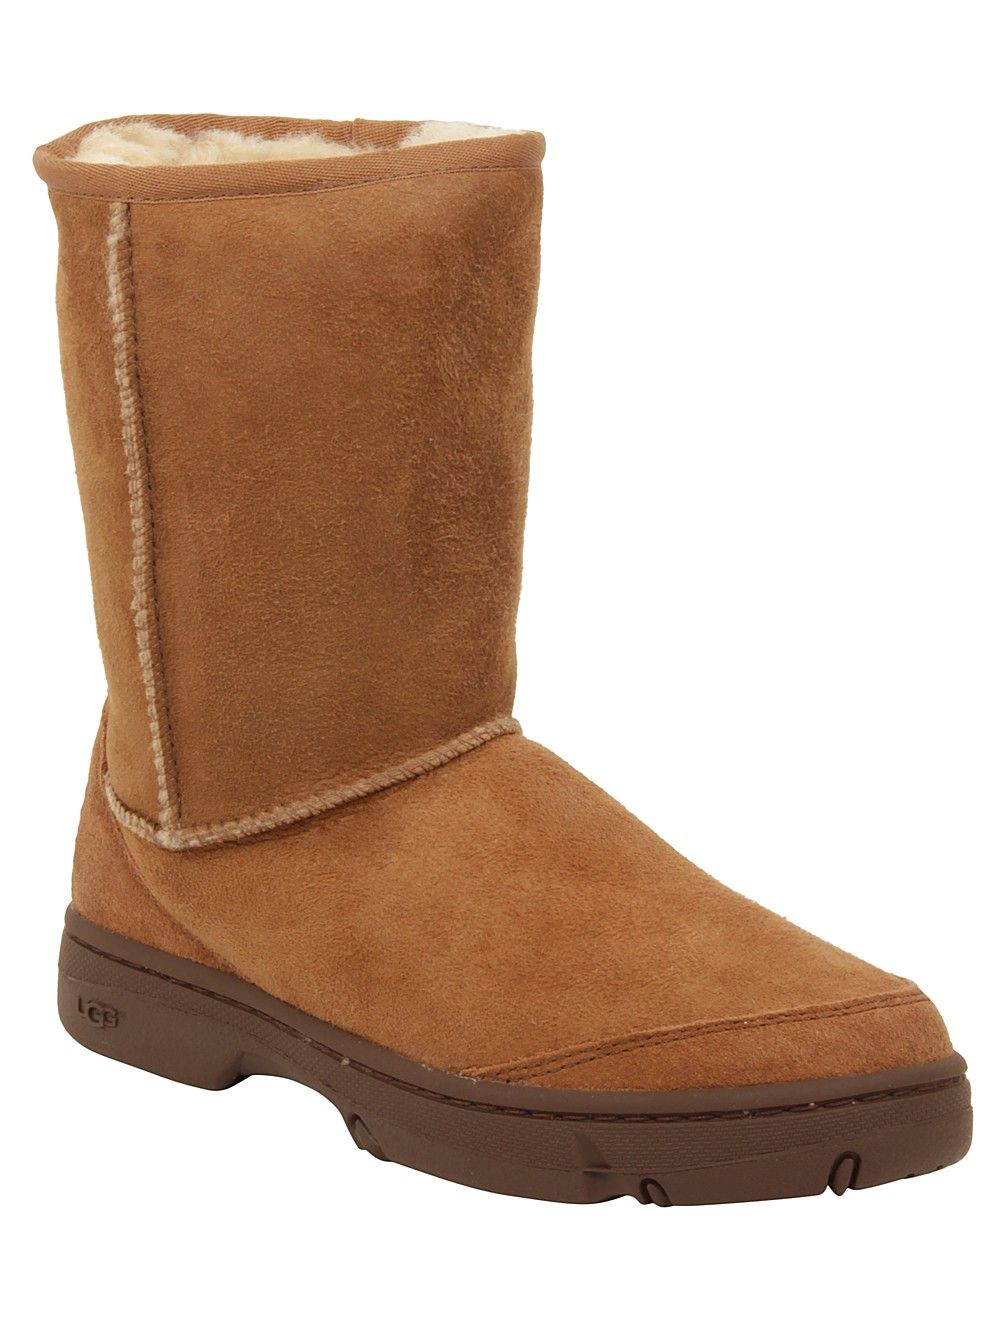 Website For Ugg Boots Super Cheap Only 39 9